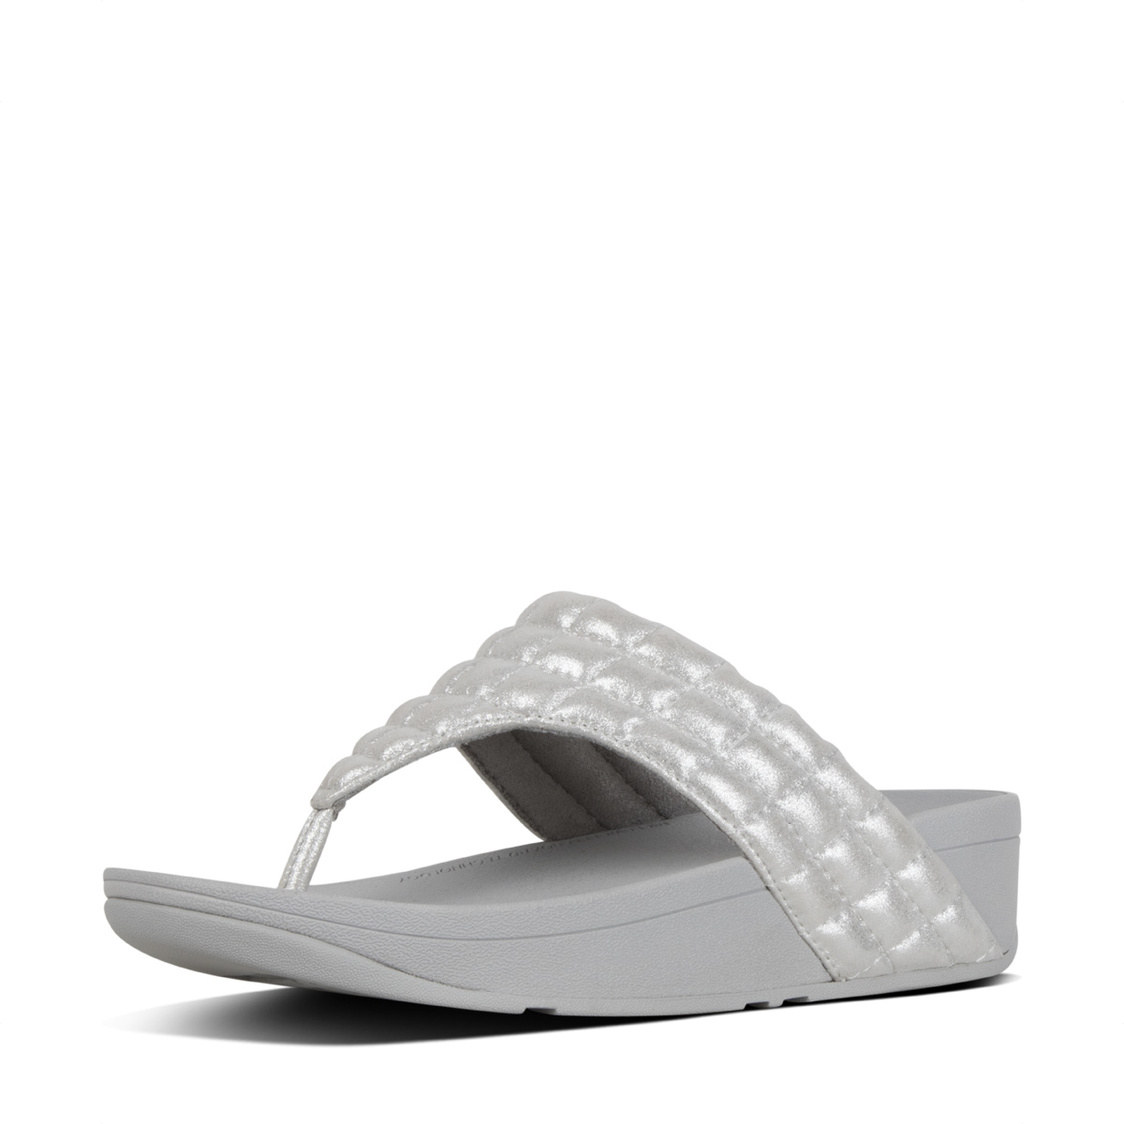 Lulu Padded Shimmysuede Toe-Thong Sandals Silver